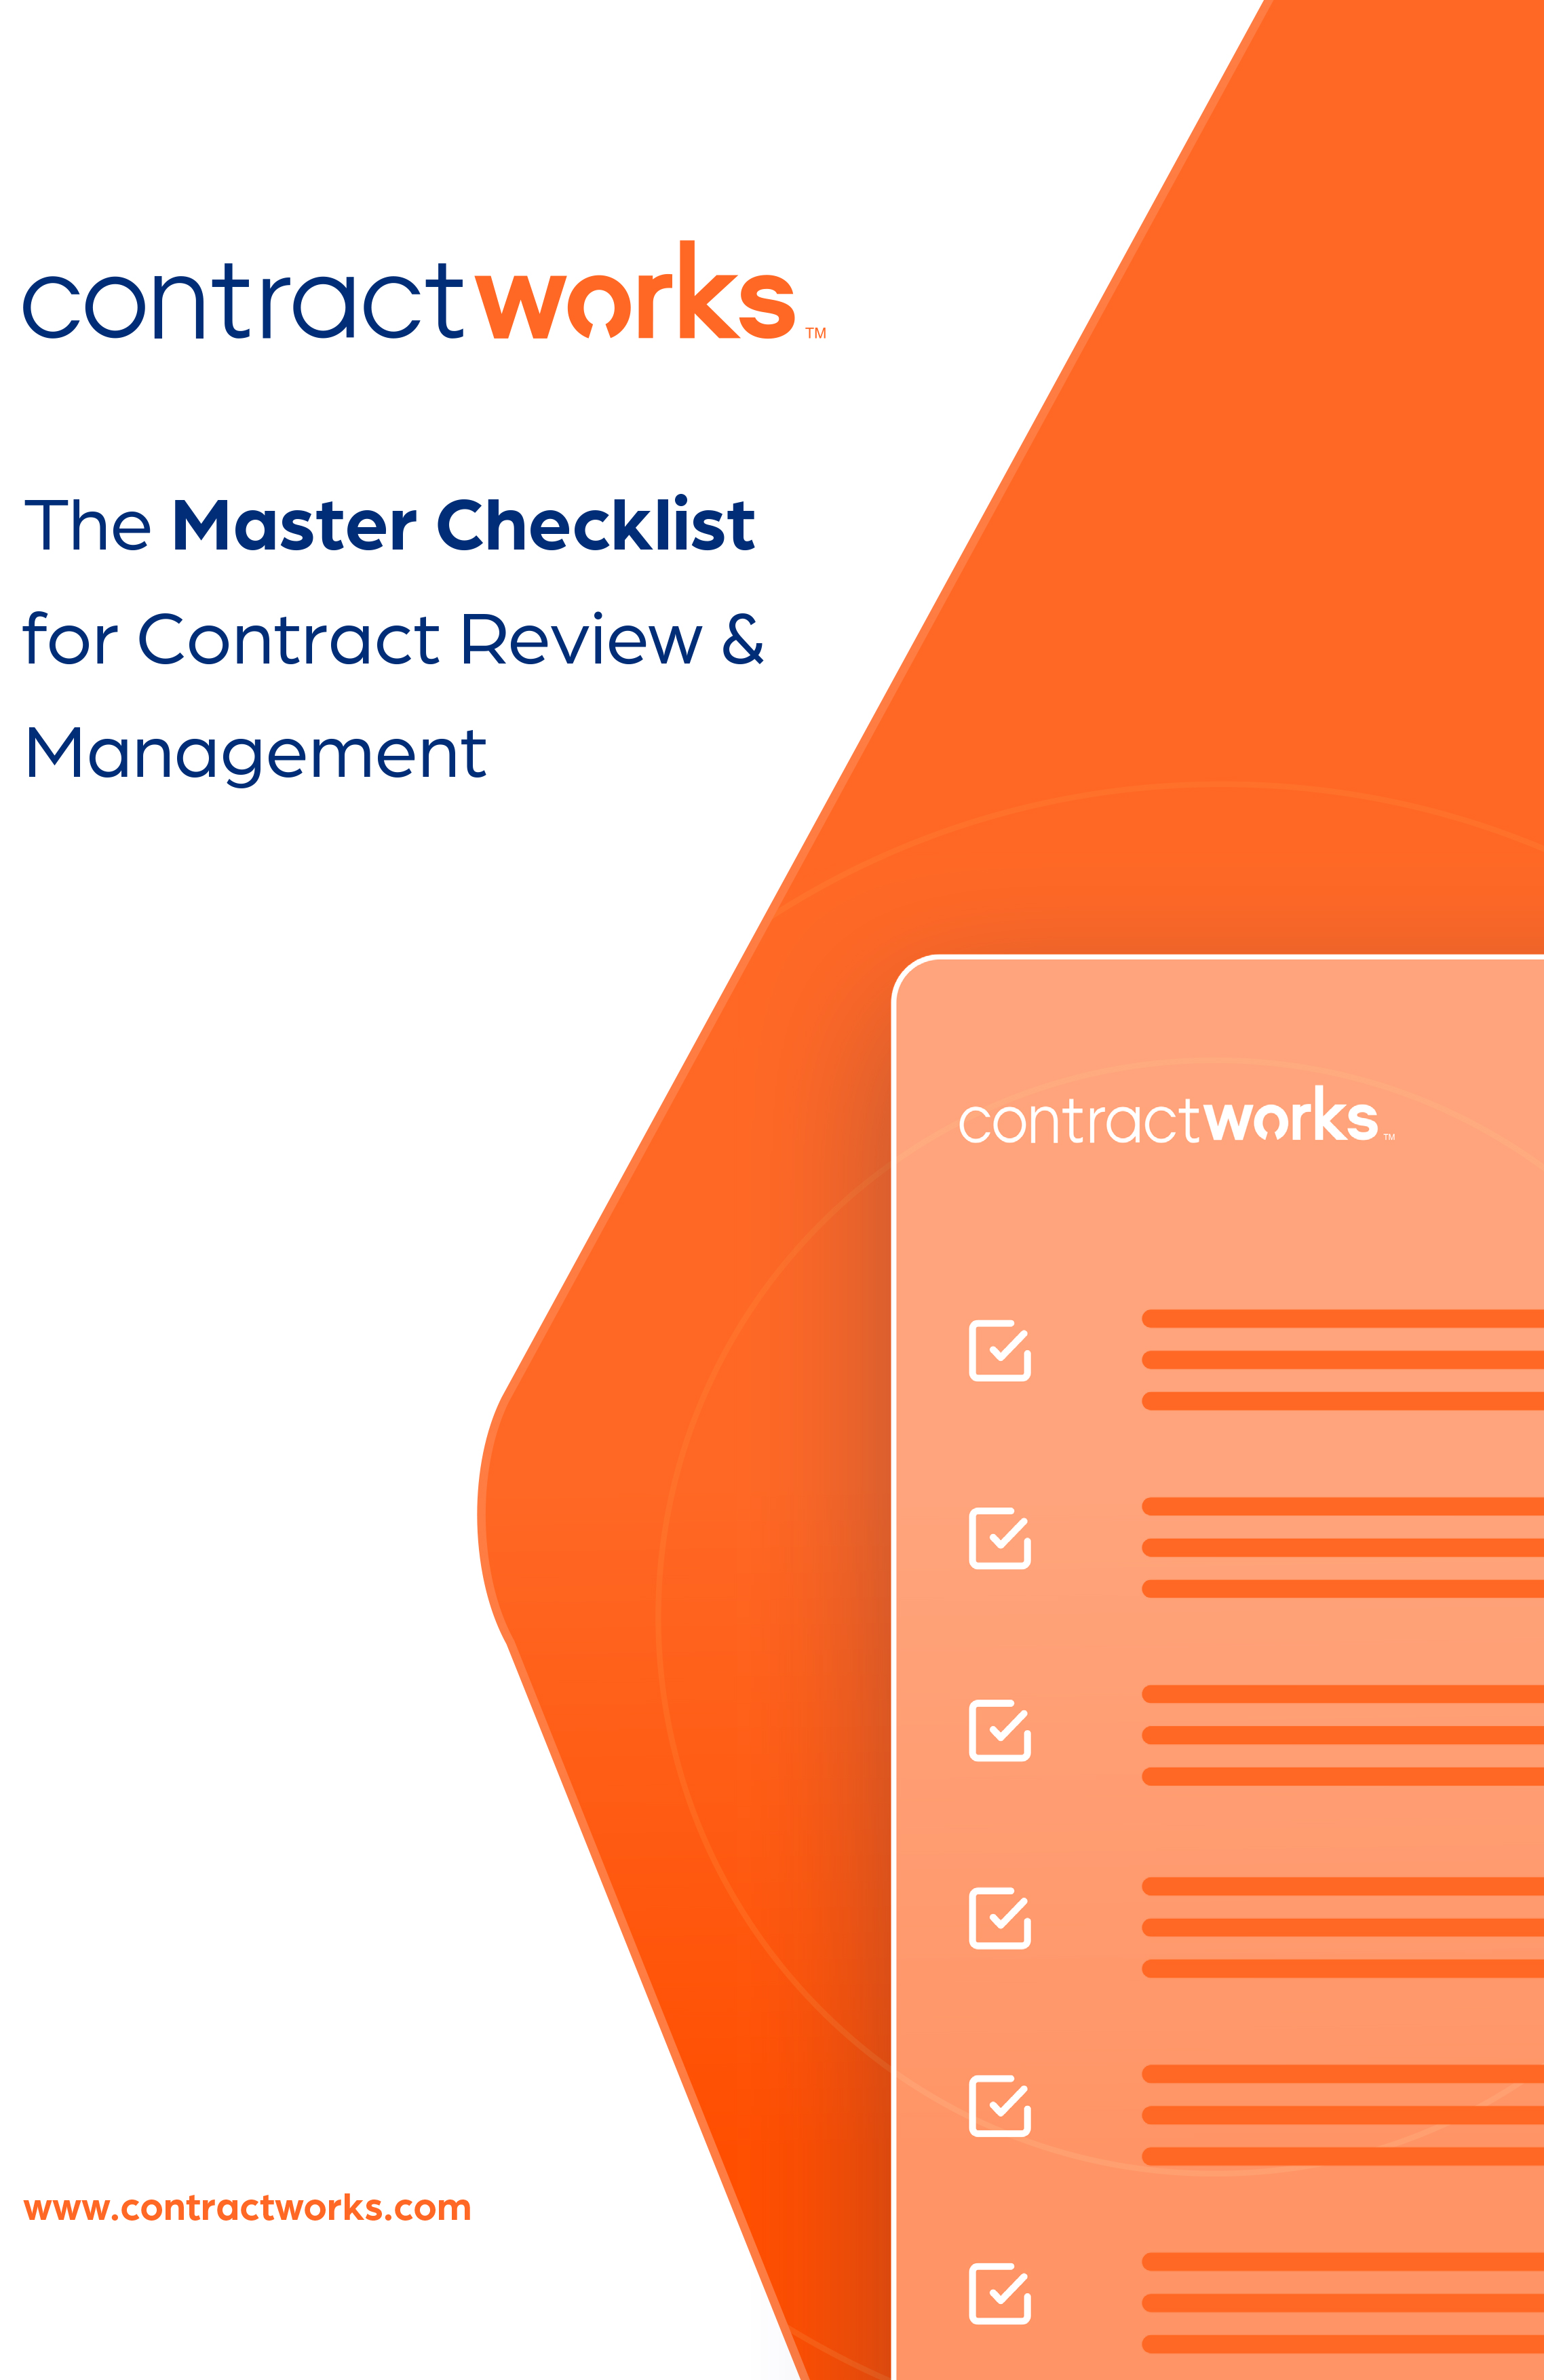 The Master Checklist for Contract Review & Management